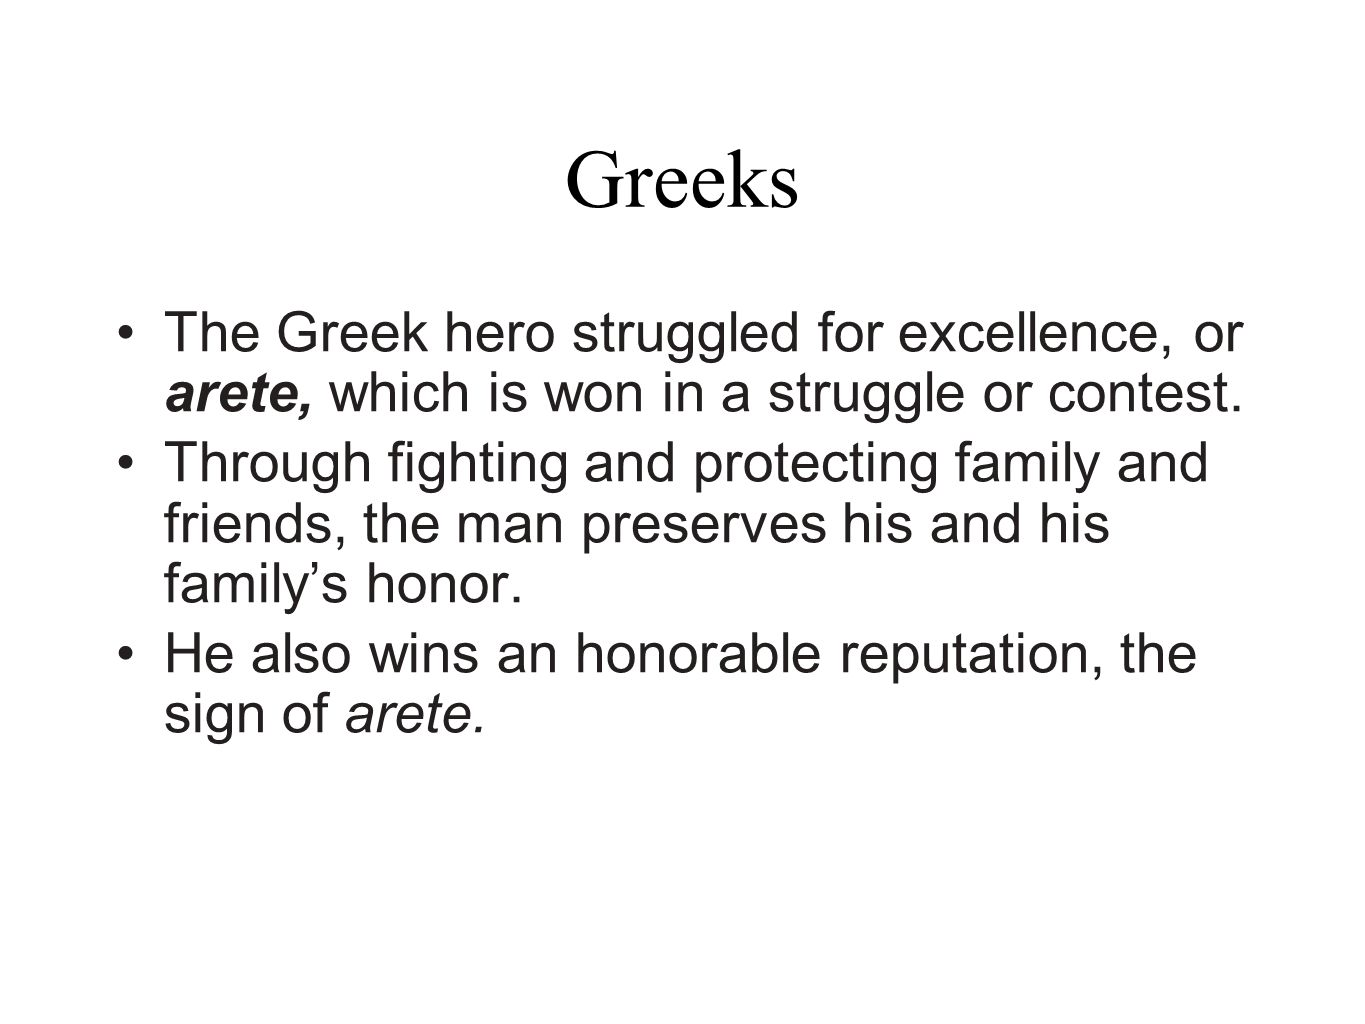 GreeksThe Greek hero struggled for excellence, or arete, which is won in a struggle or contest.